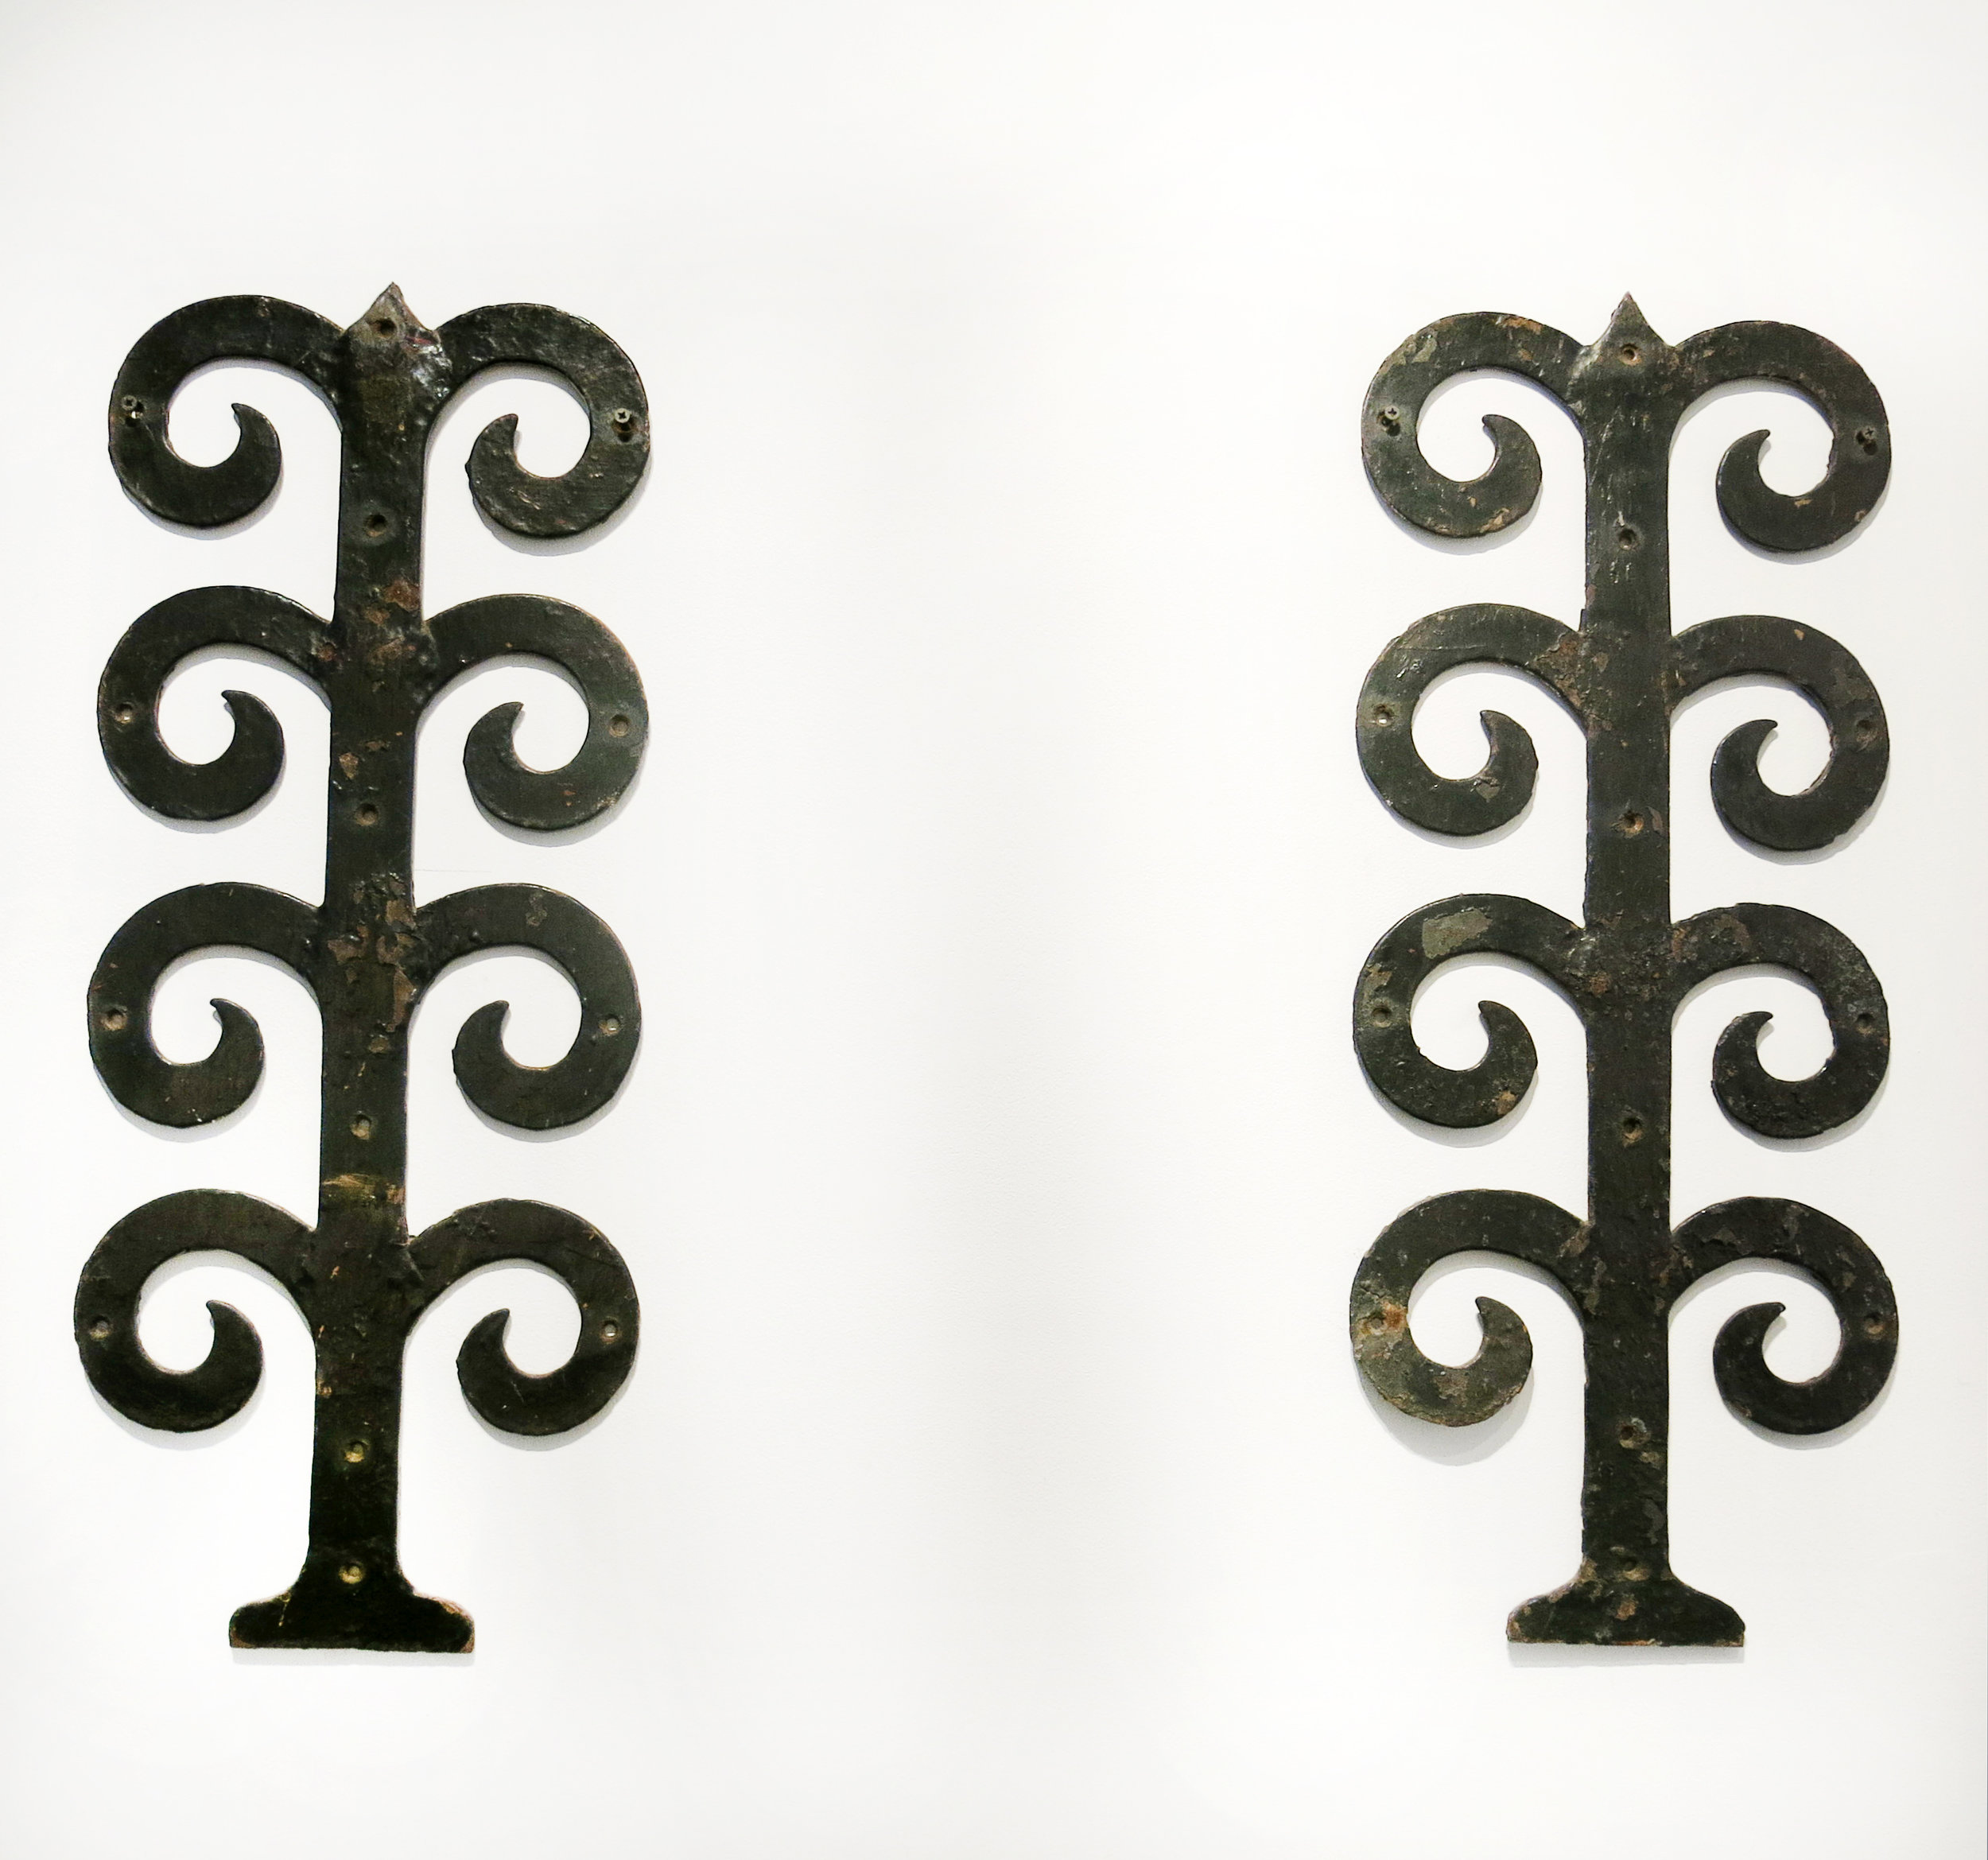 English, 2 Cast Iron Hinge Fronts, 19th c., cast iron, 29h x 11.5w in.